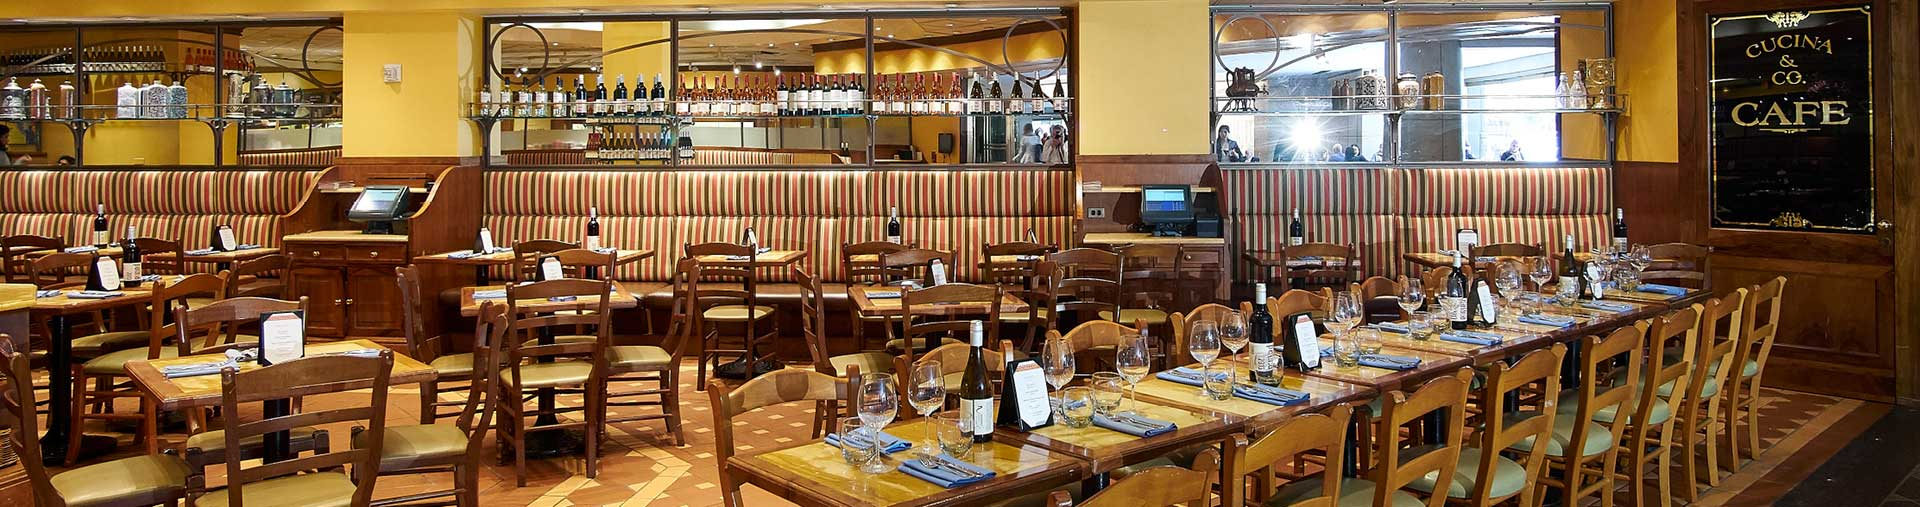 Private event dining room at Cucina & Co. Rockefeller Center in midtown NYC